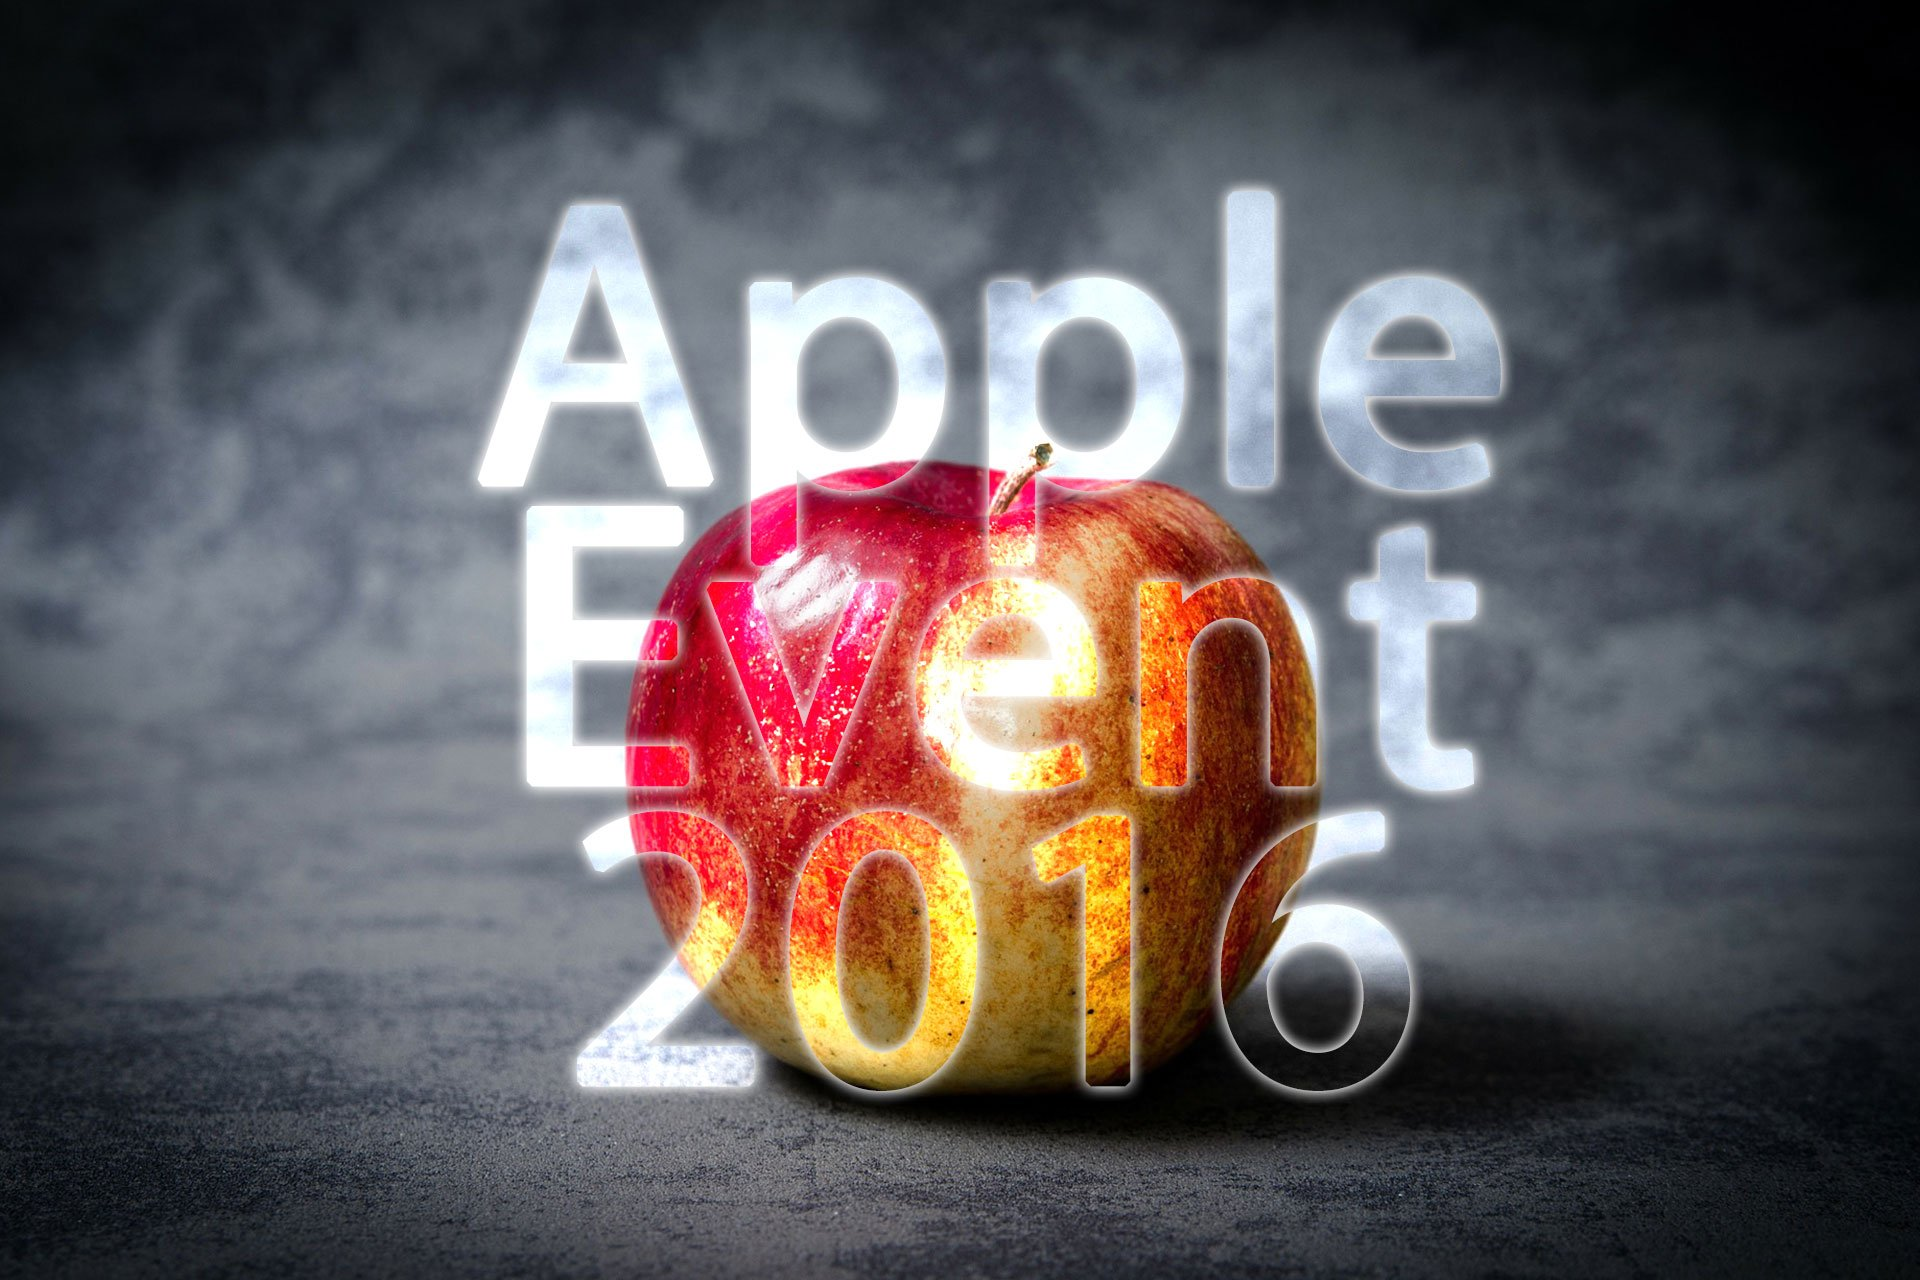 Apple Event März 2016: iPhone 6c, Apple Watch 2, iPad Air 3  & neue Skylake Macbooks? 2